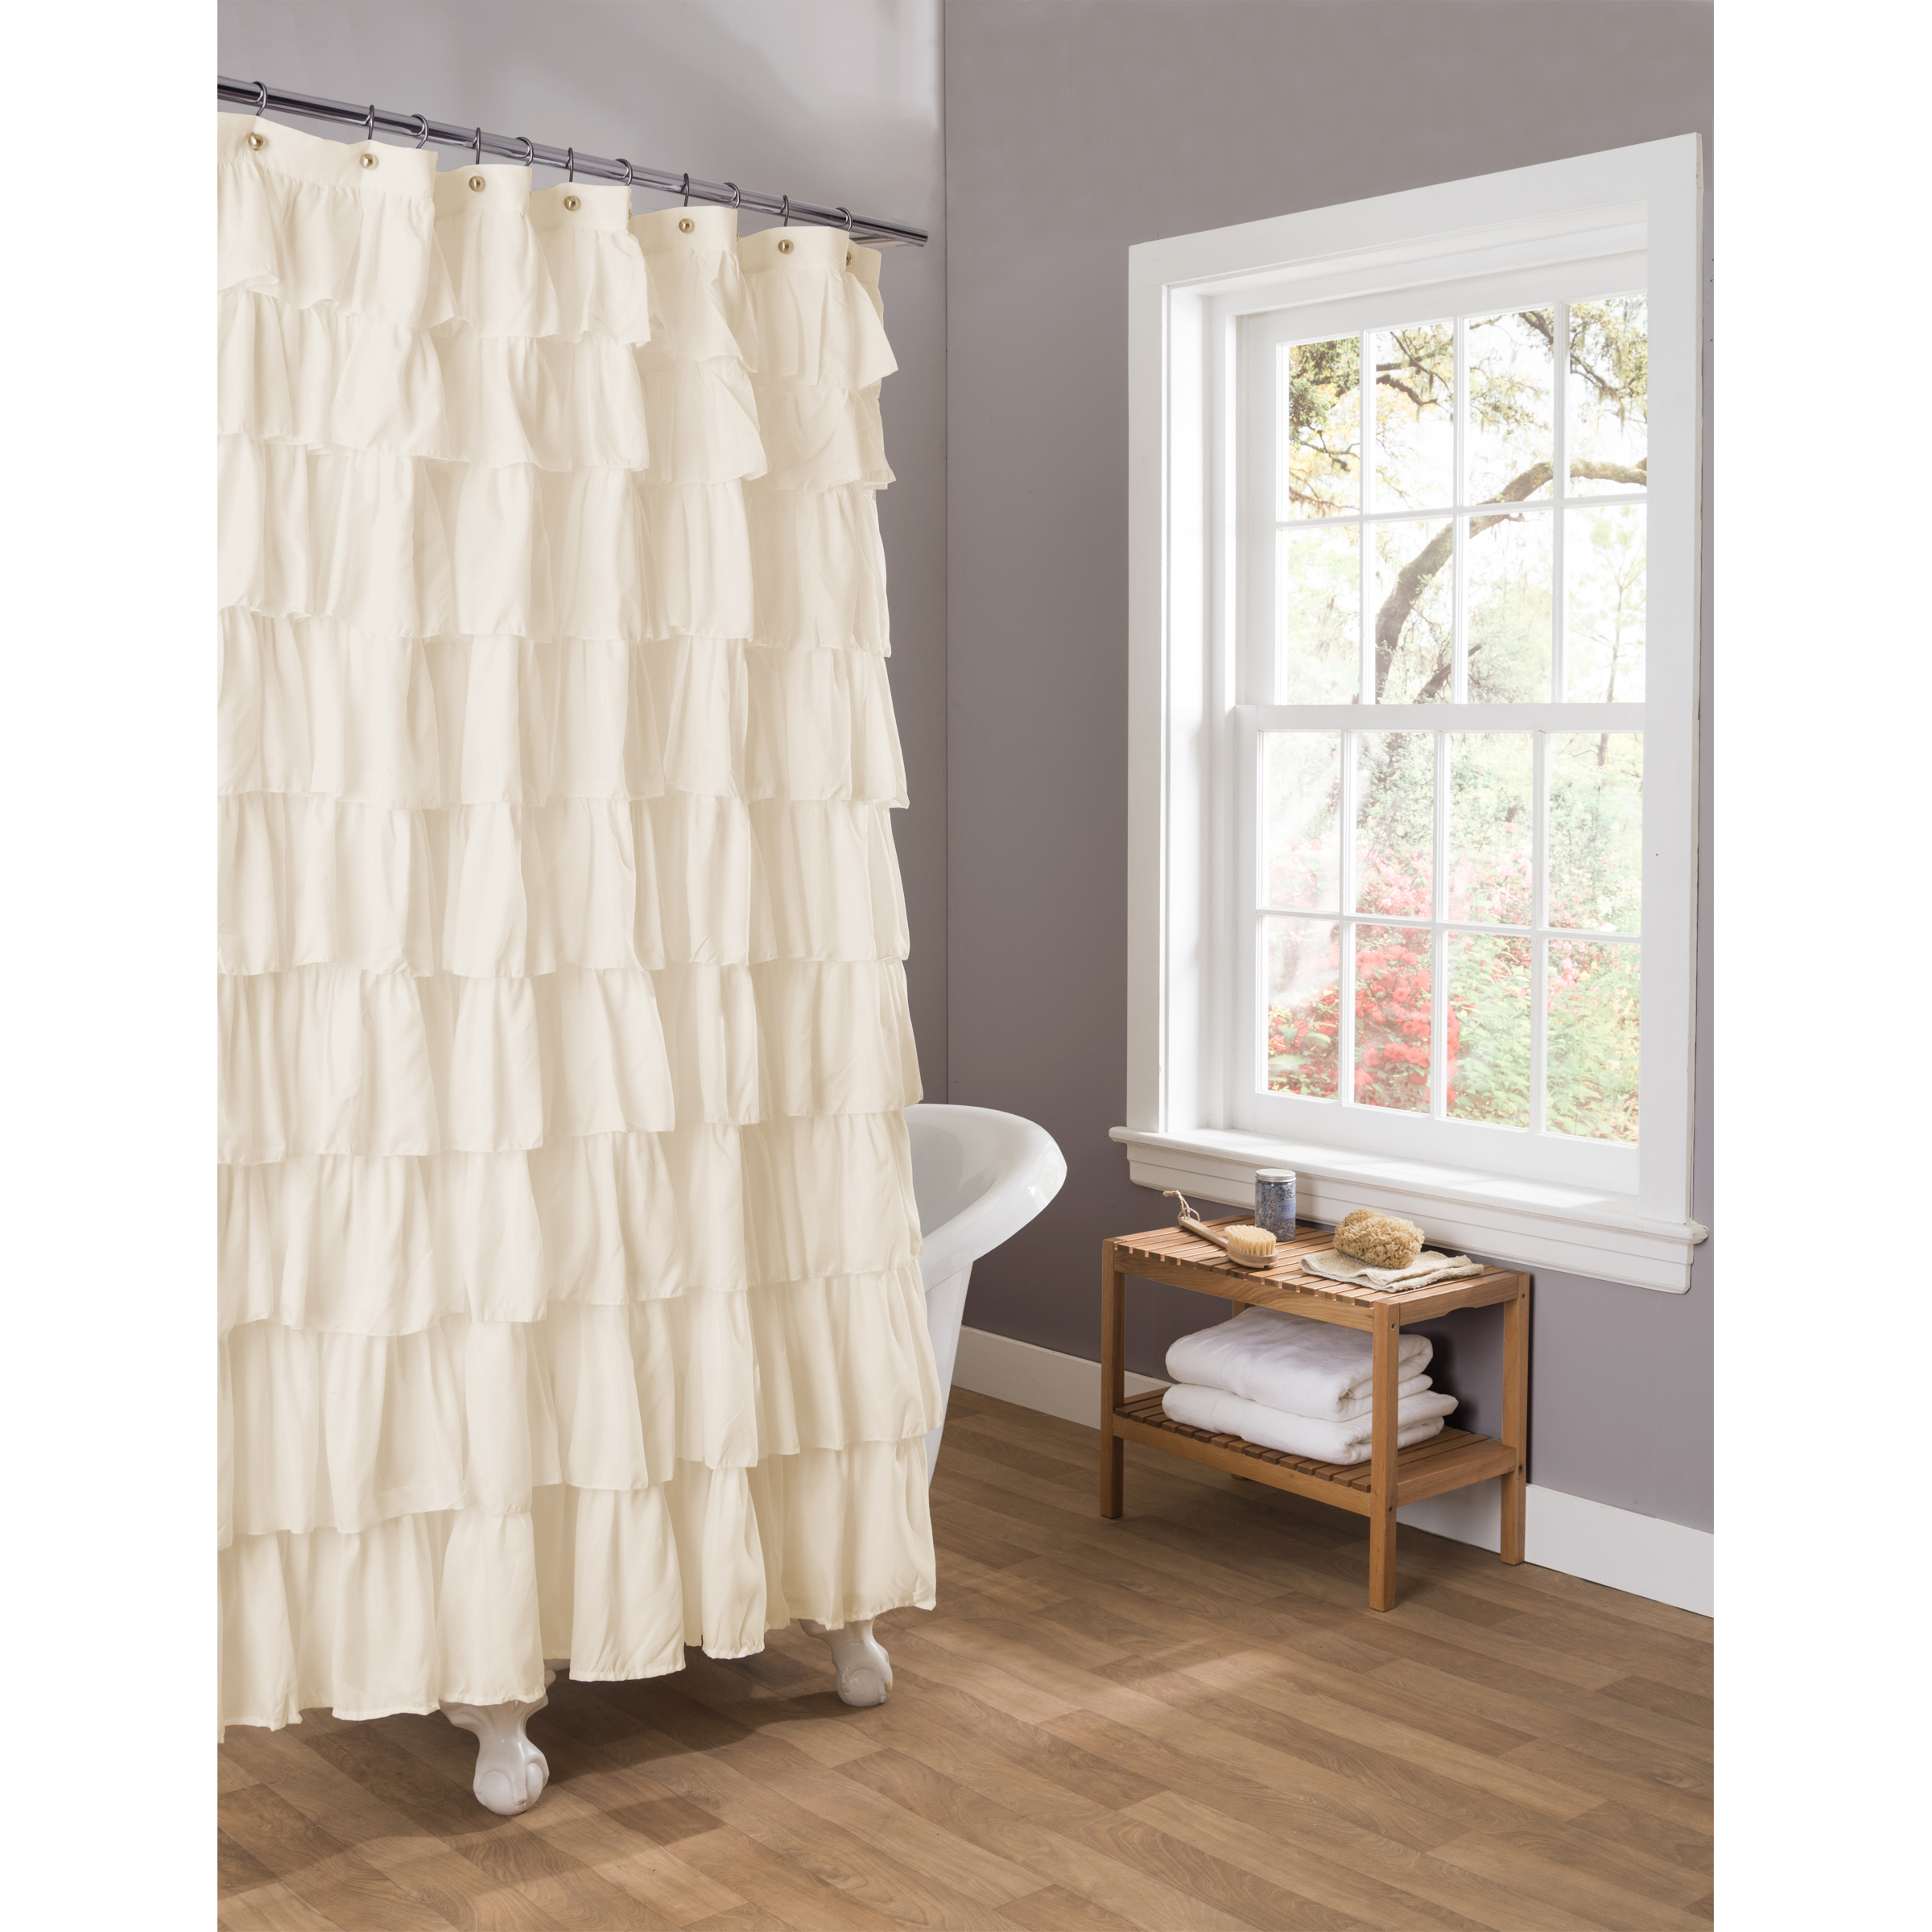 Bed bath and beyond shower curtain liners